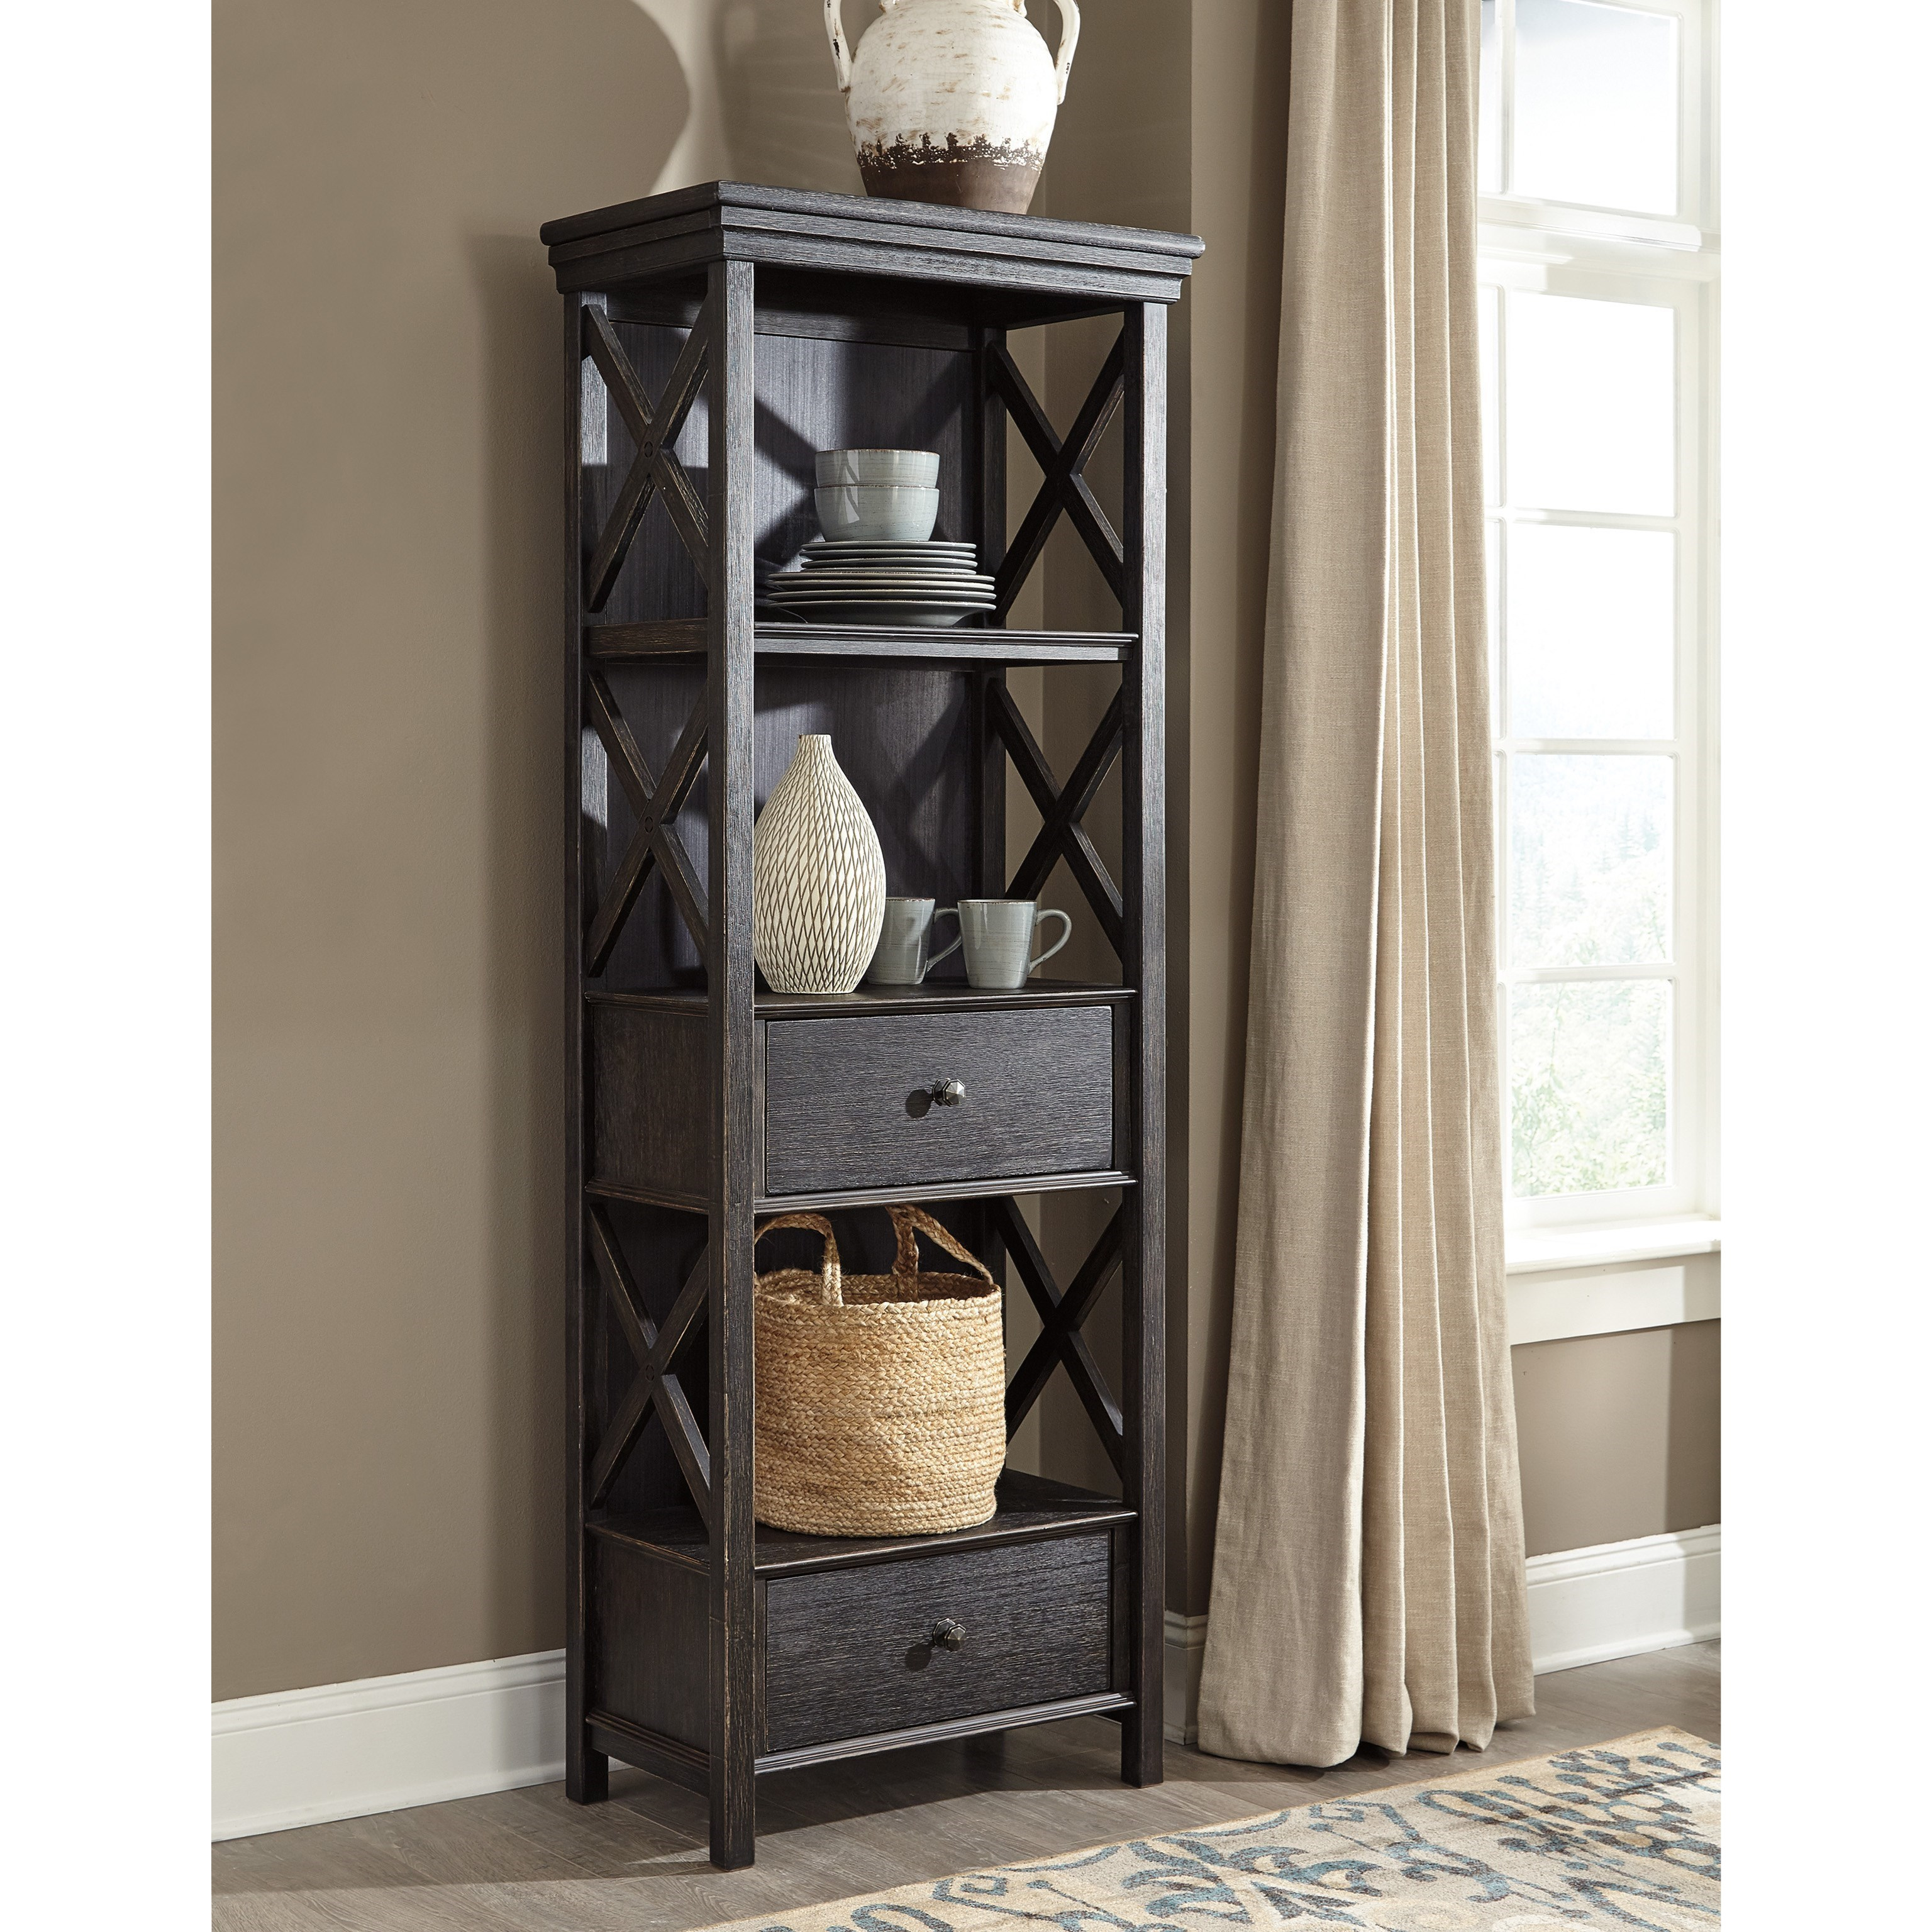 Ashley Furniture Tyler Texas: Signature Design By Ashley Tyler Creek D736-76 Relaxed